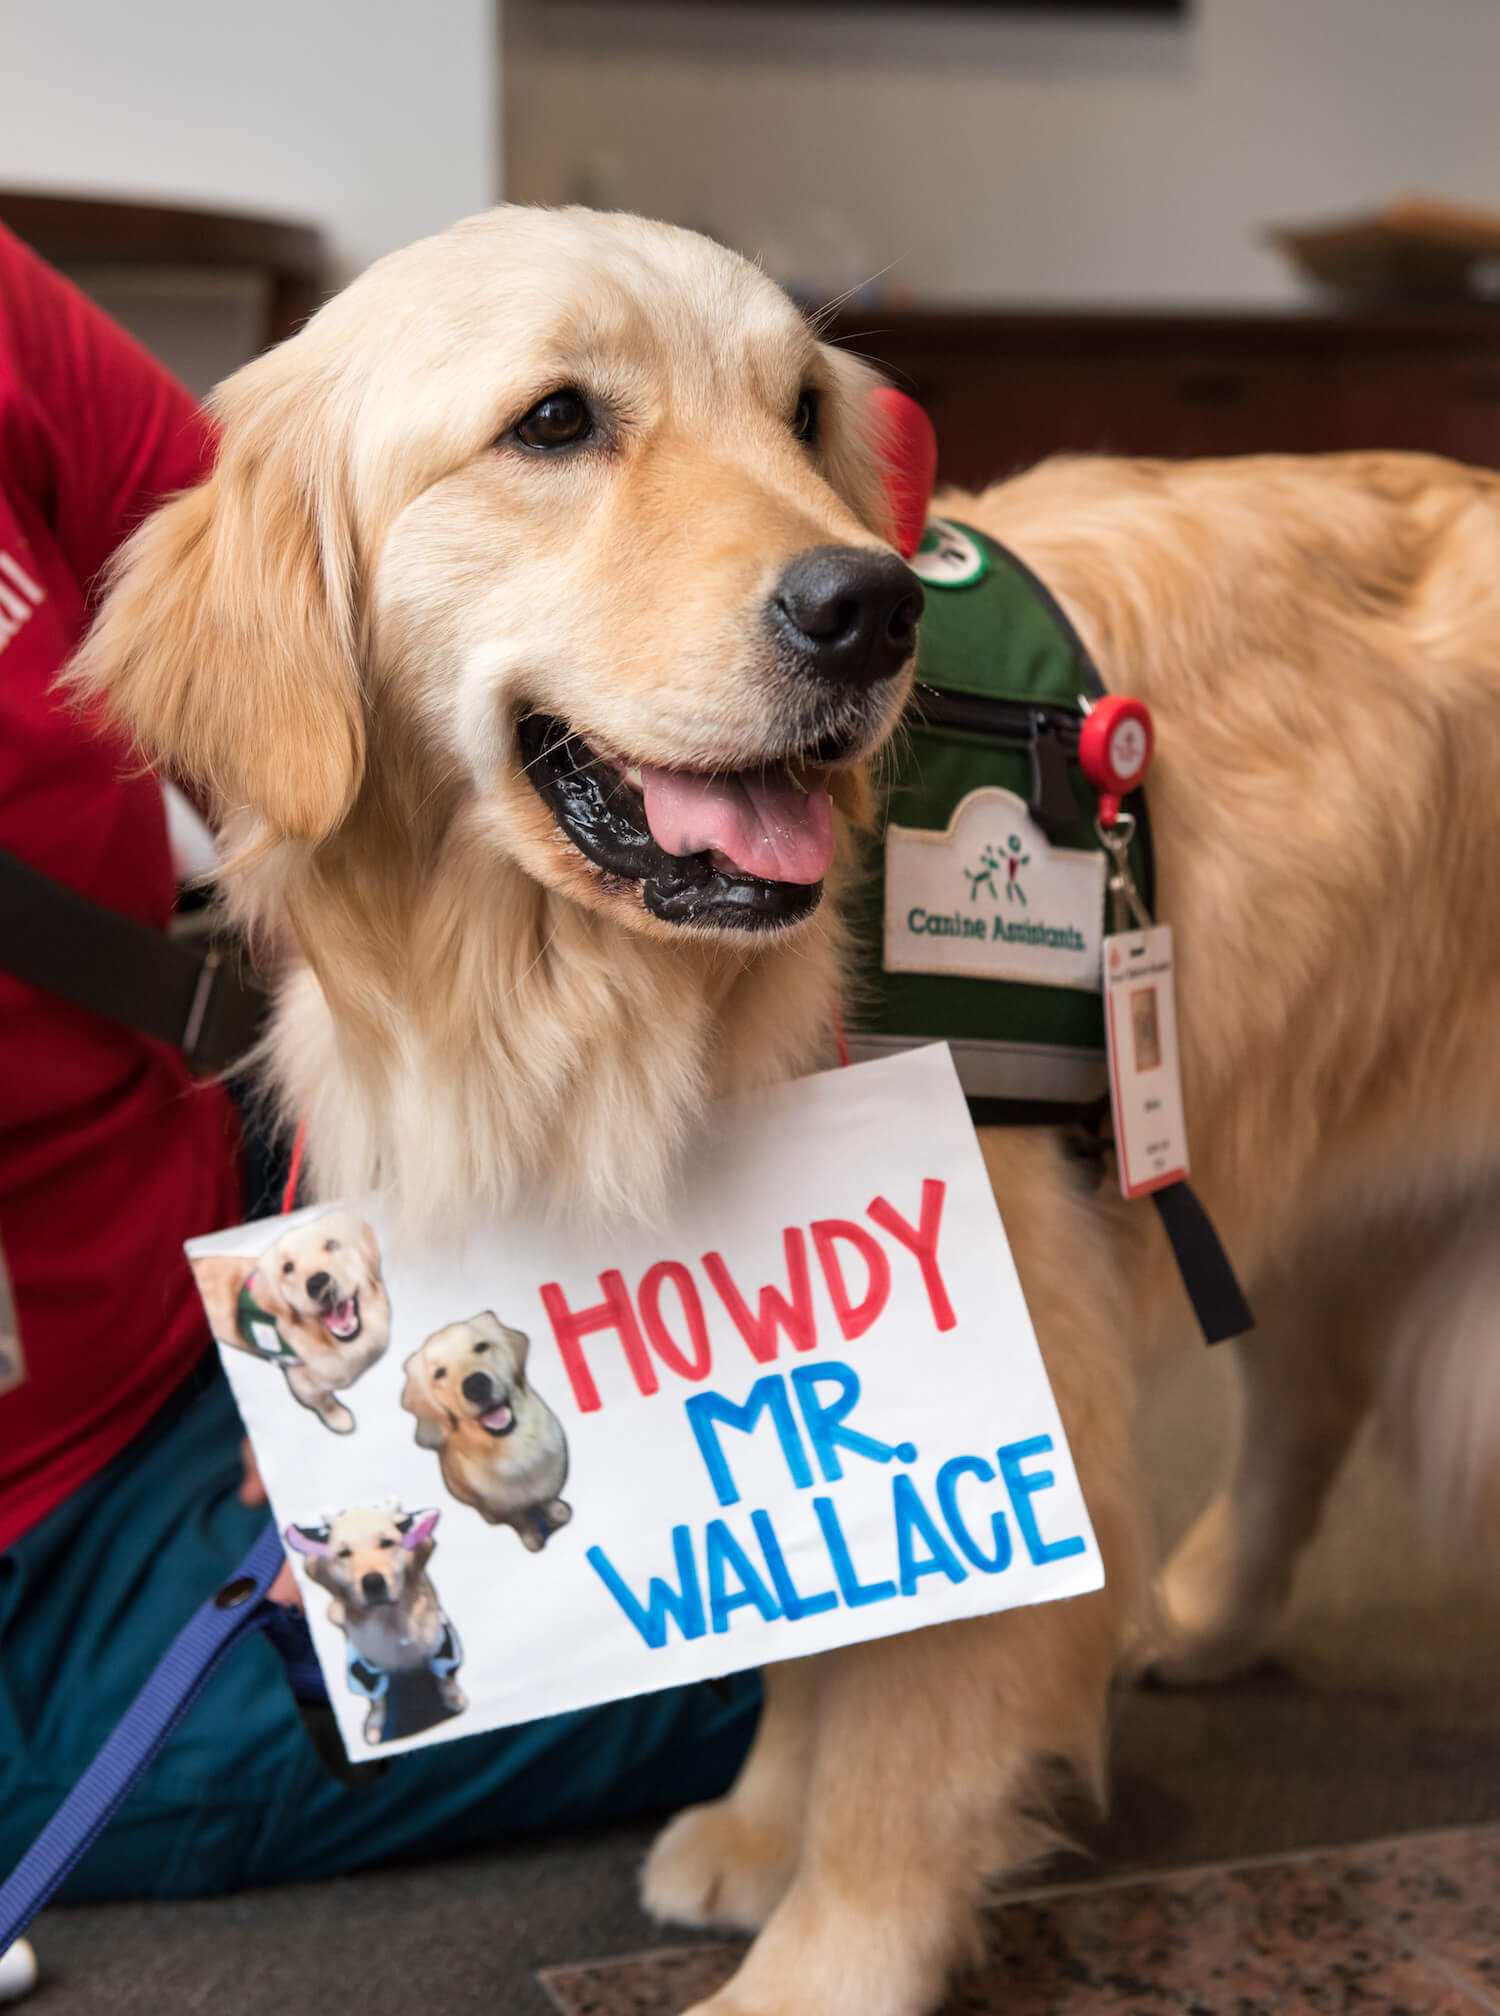 Bailey, Texas Children's second therapy dog, prepares to meet Mark A. Wallace, president and CEO of Texas Children's, for the first time. Photo: Allen S. Kramer/Texas Children's Hospital